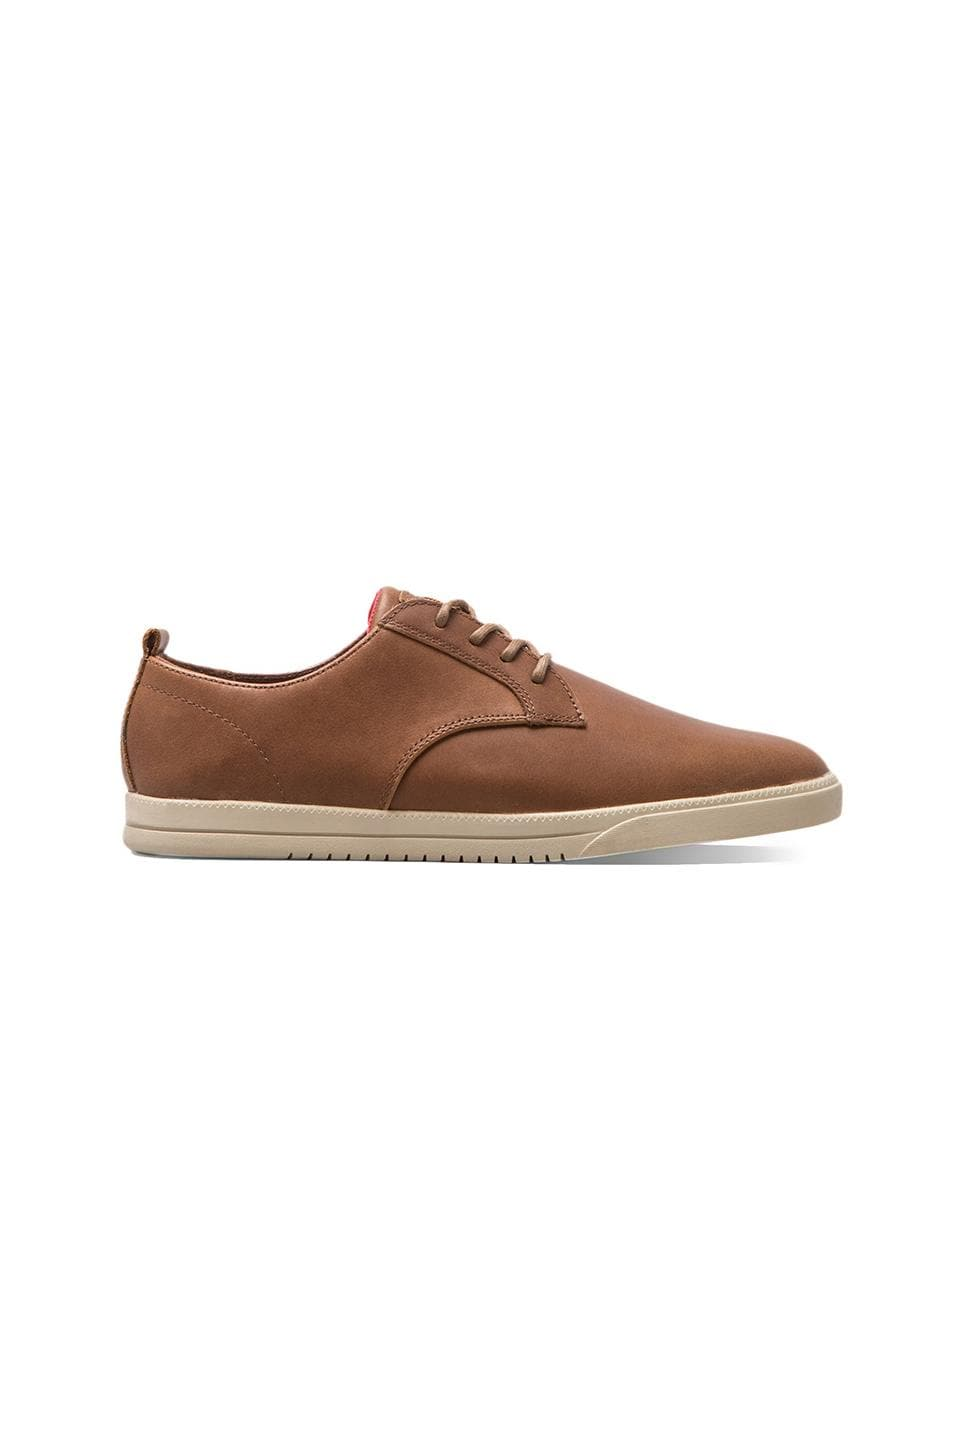 Clae Ellington in Chestnut Leather